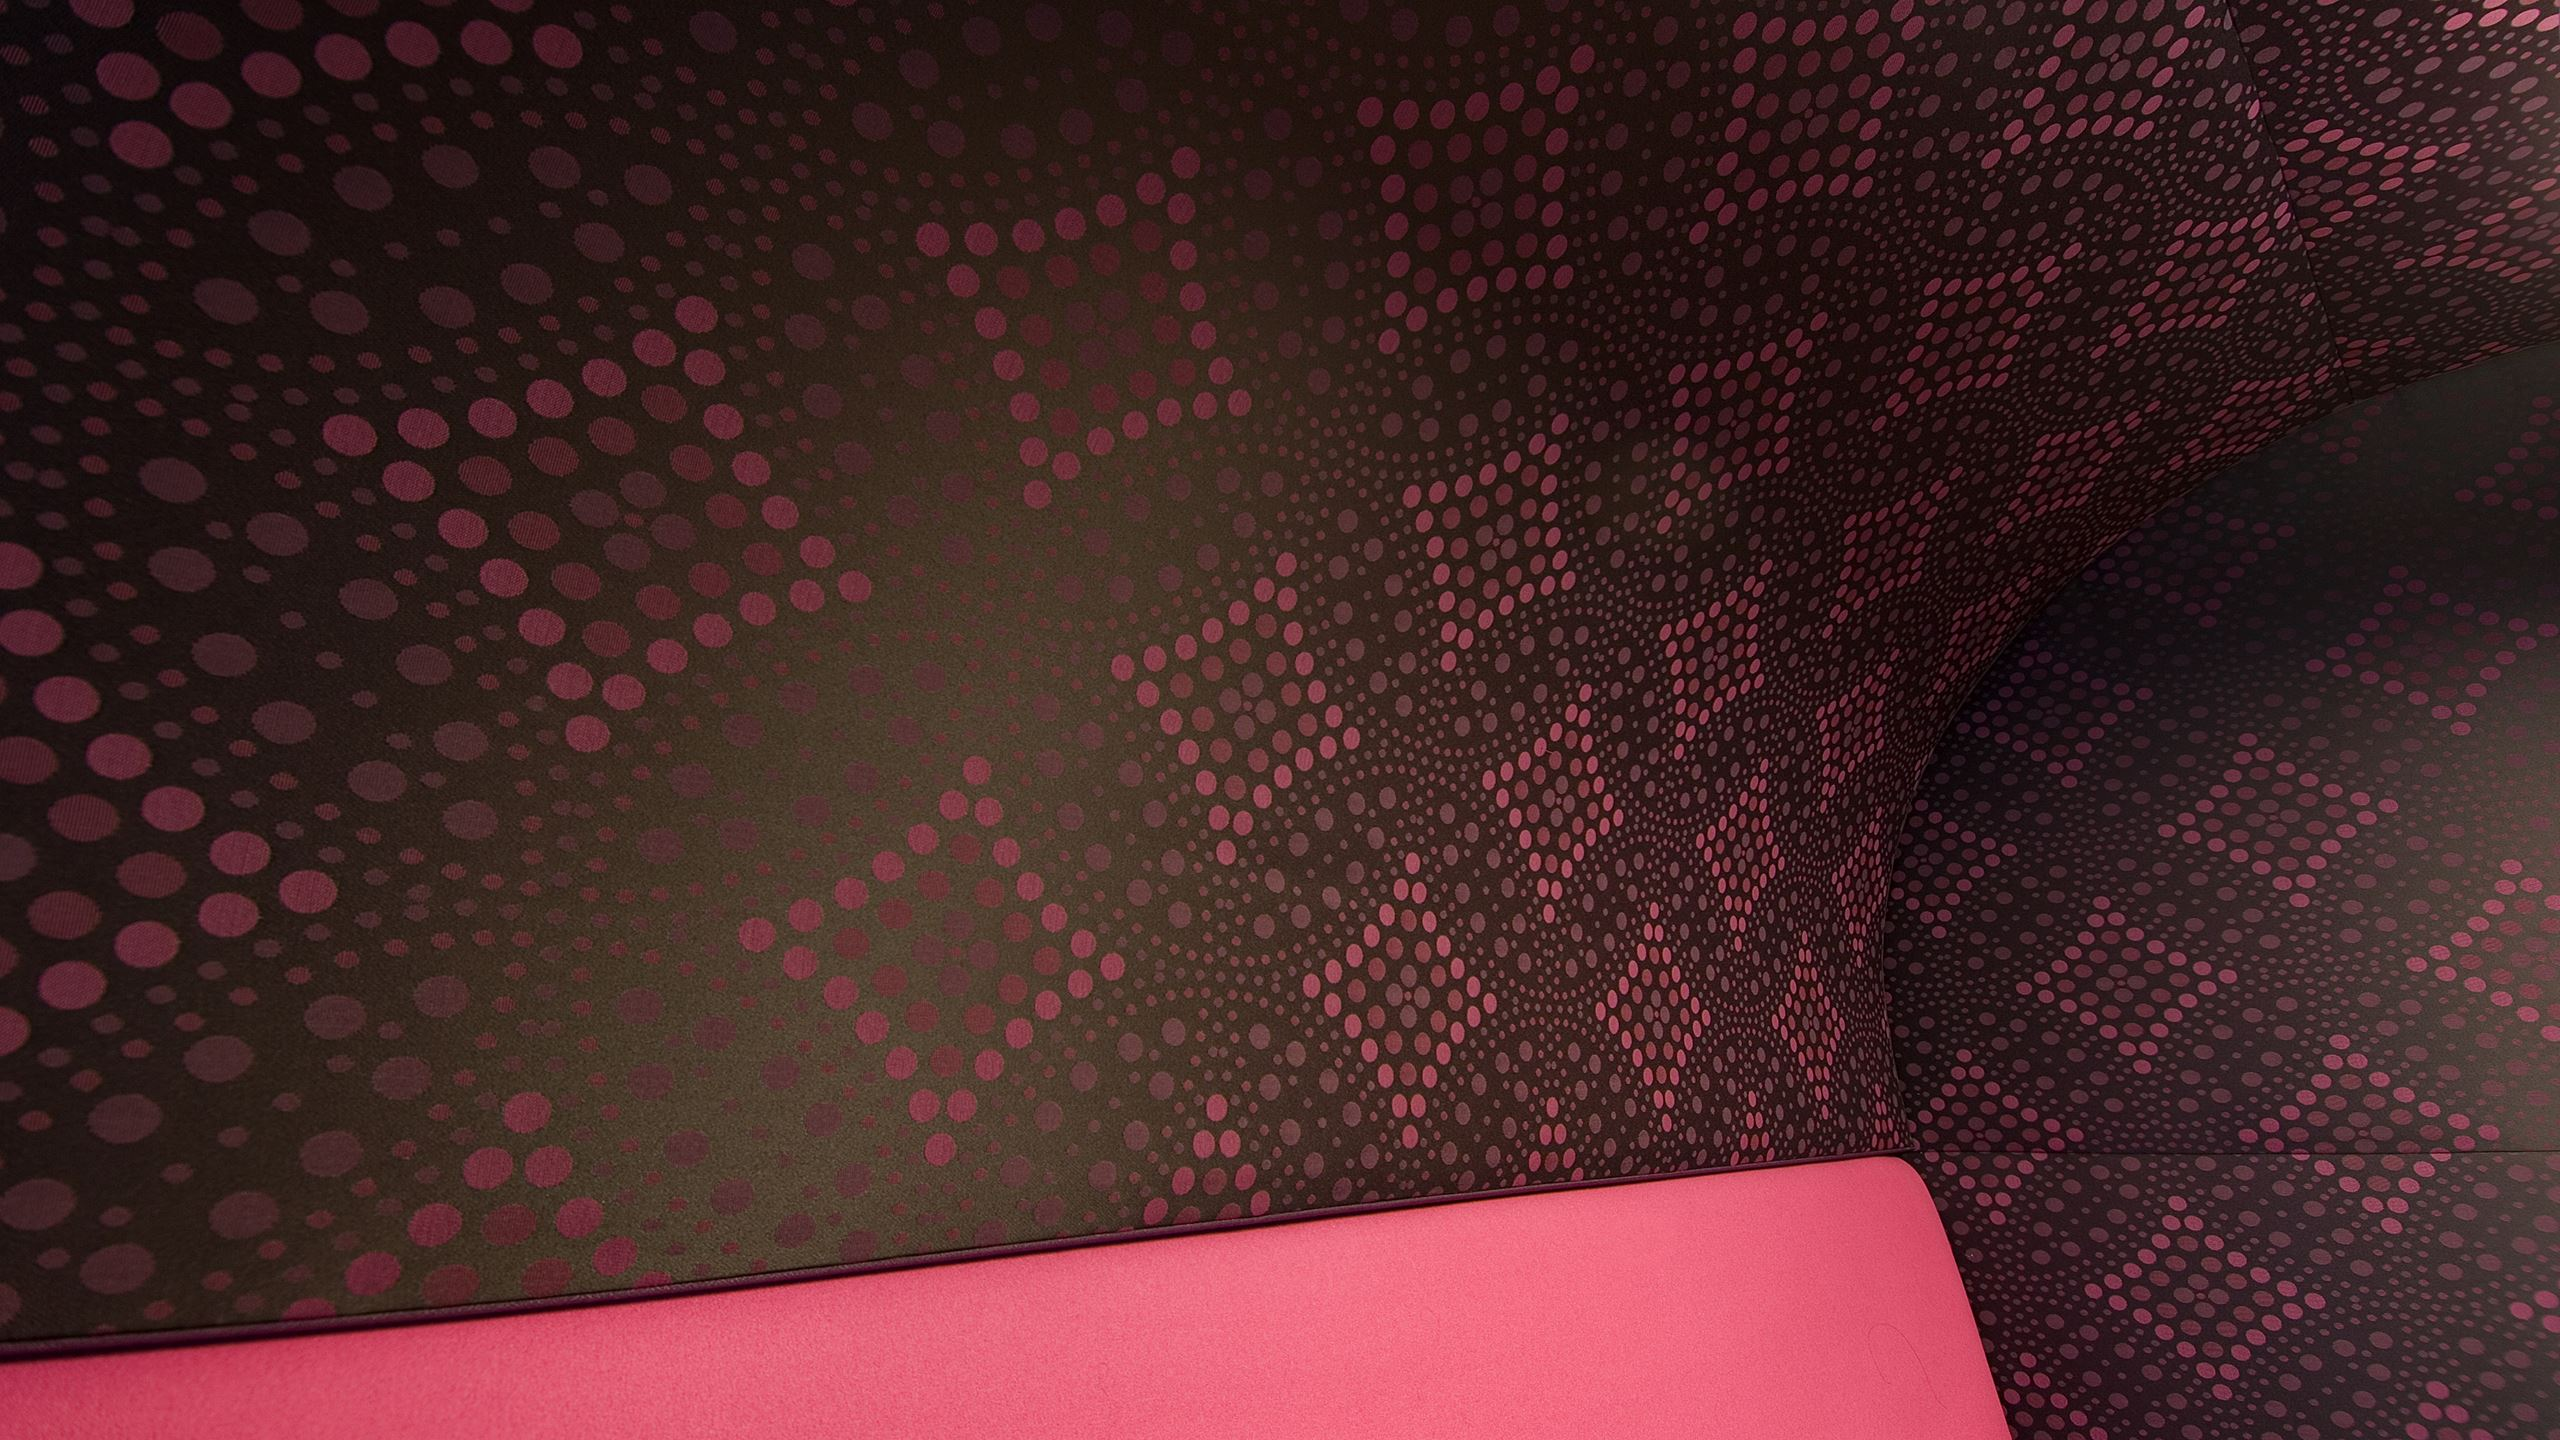 ASB regional centre's under the stairs seating alcove with Snaptex stretched fabric system